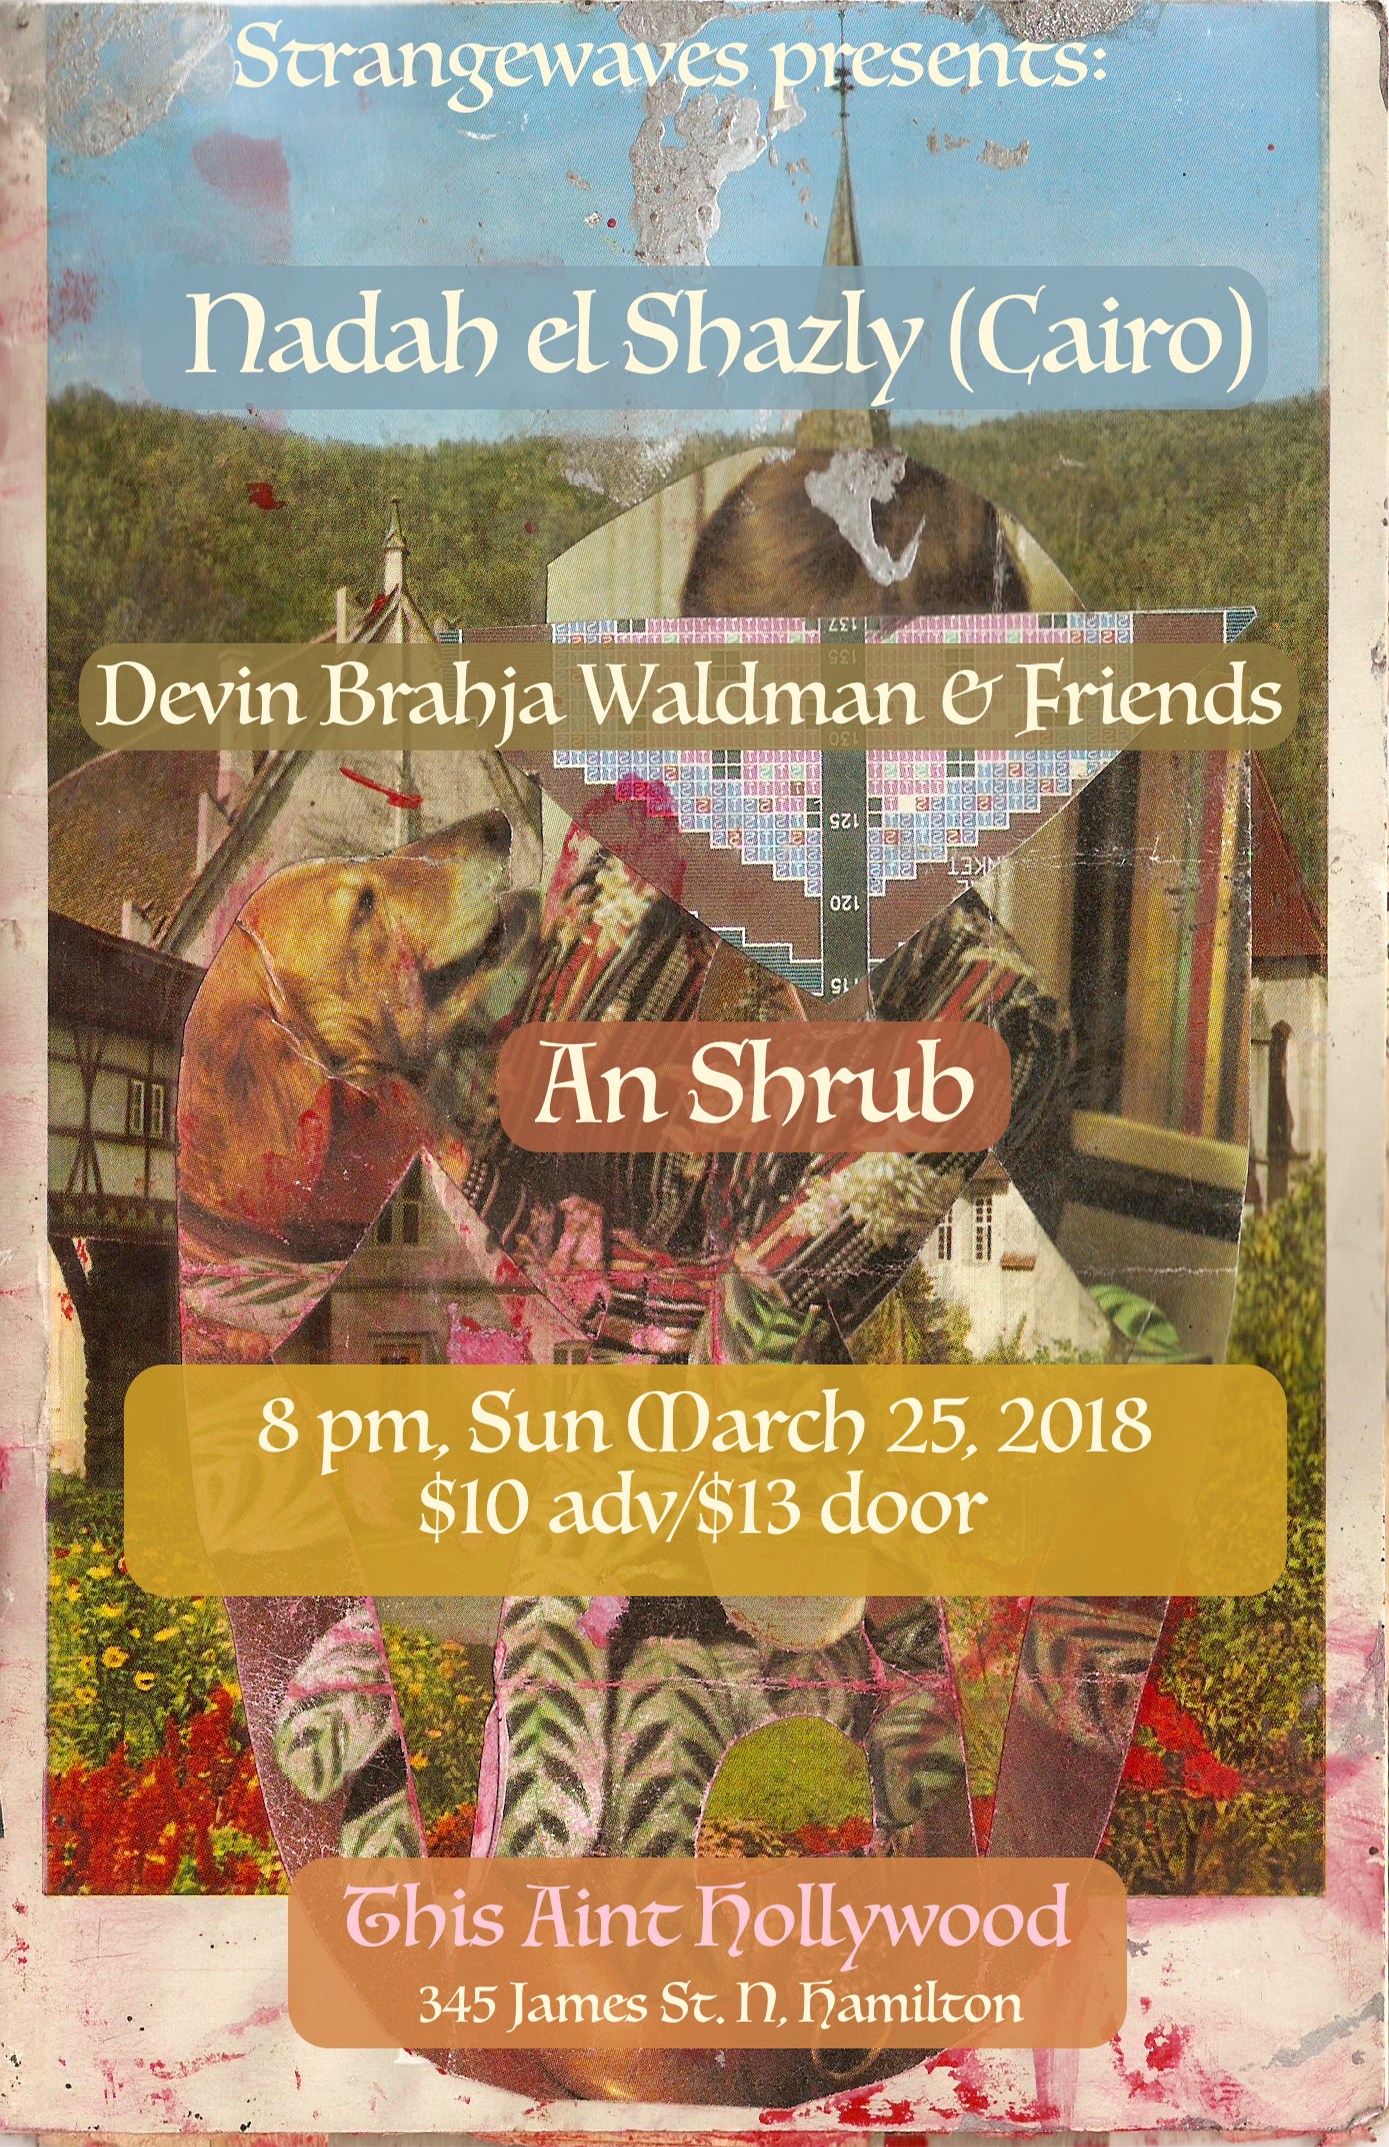 Nadah El Shazly (Cairo), Devin Brahja Waldman &friends, An Shrub  @This Ain't Hollywood